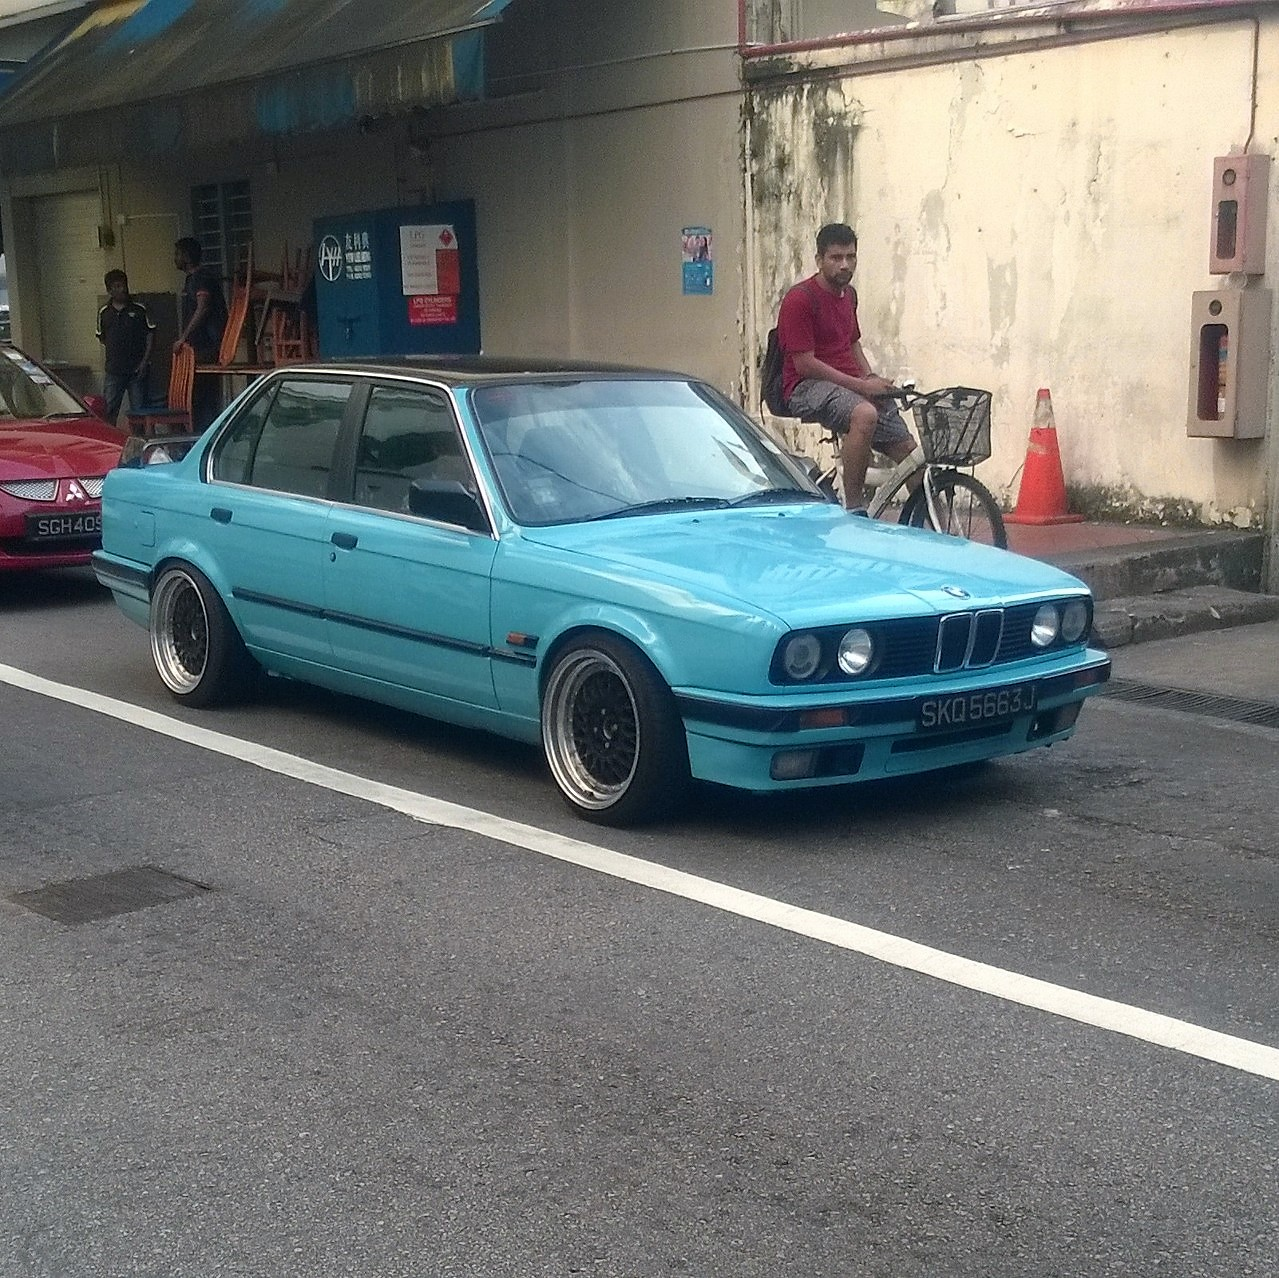 Singapore Vintage and Classic Cars: More than an old car #51: BMW ...